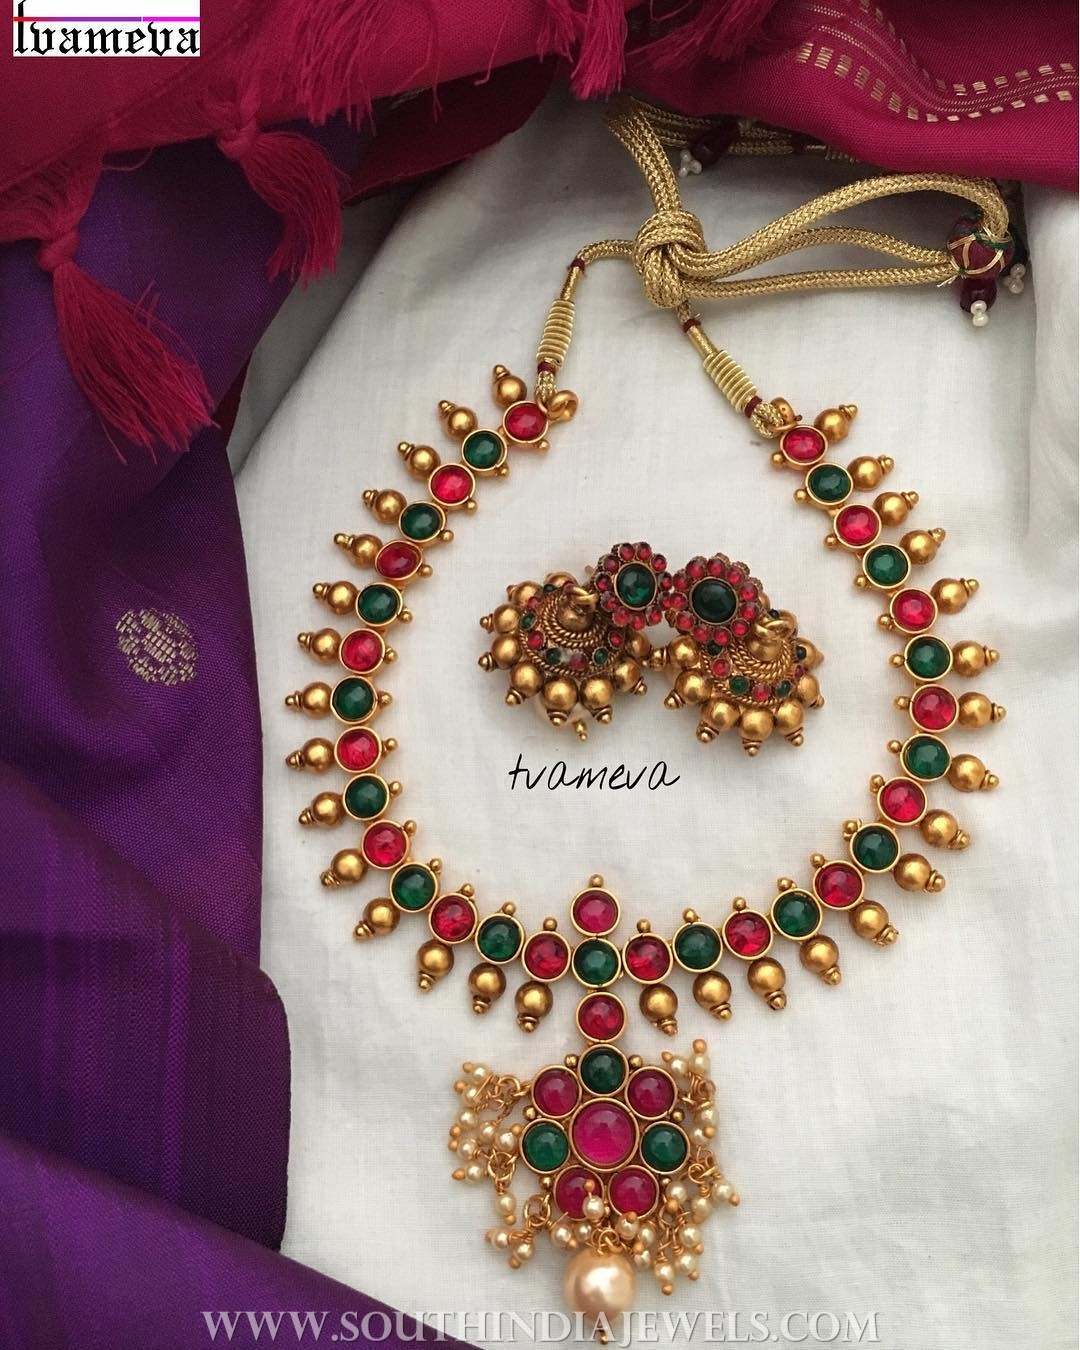 Gold Plated Kemp Attigai and Jhumka From Tvameva